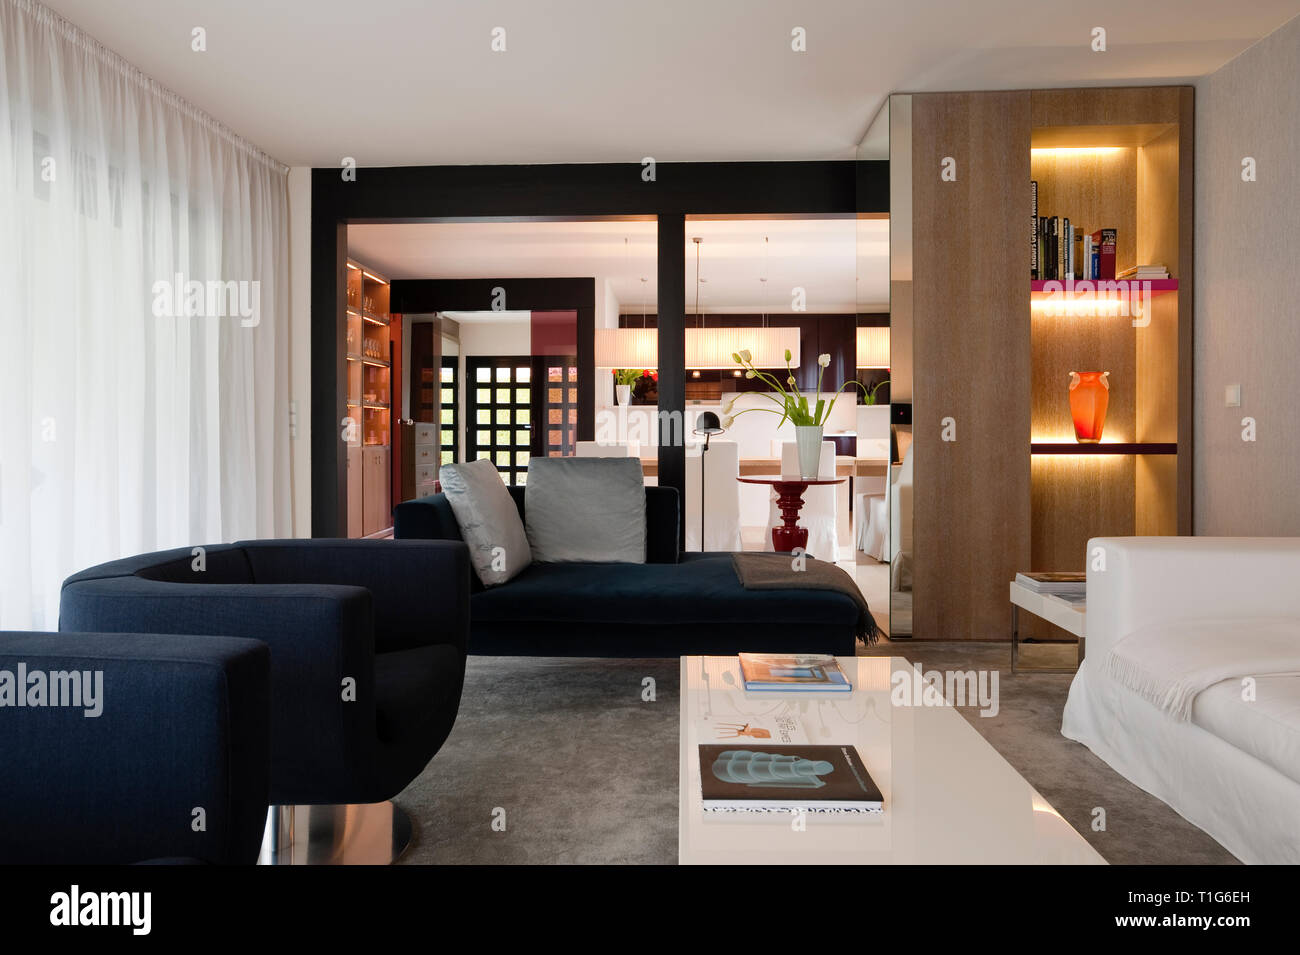 Modern living room with recessed shelves - Stock Image